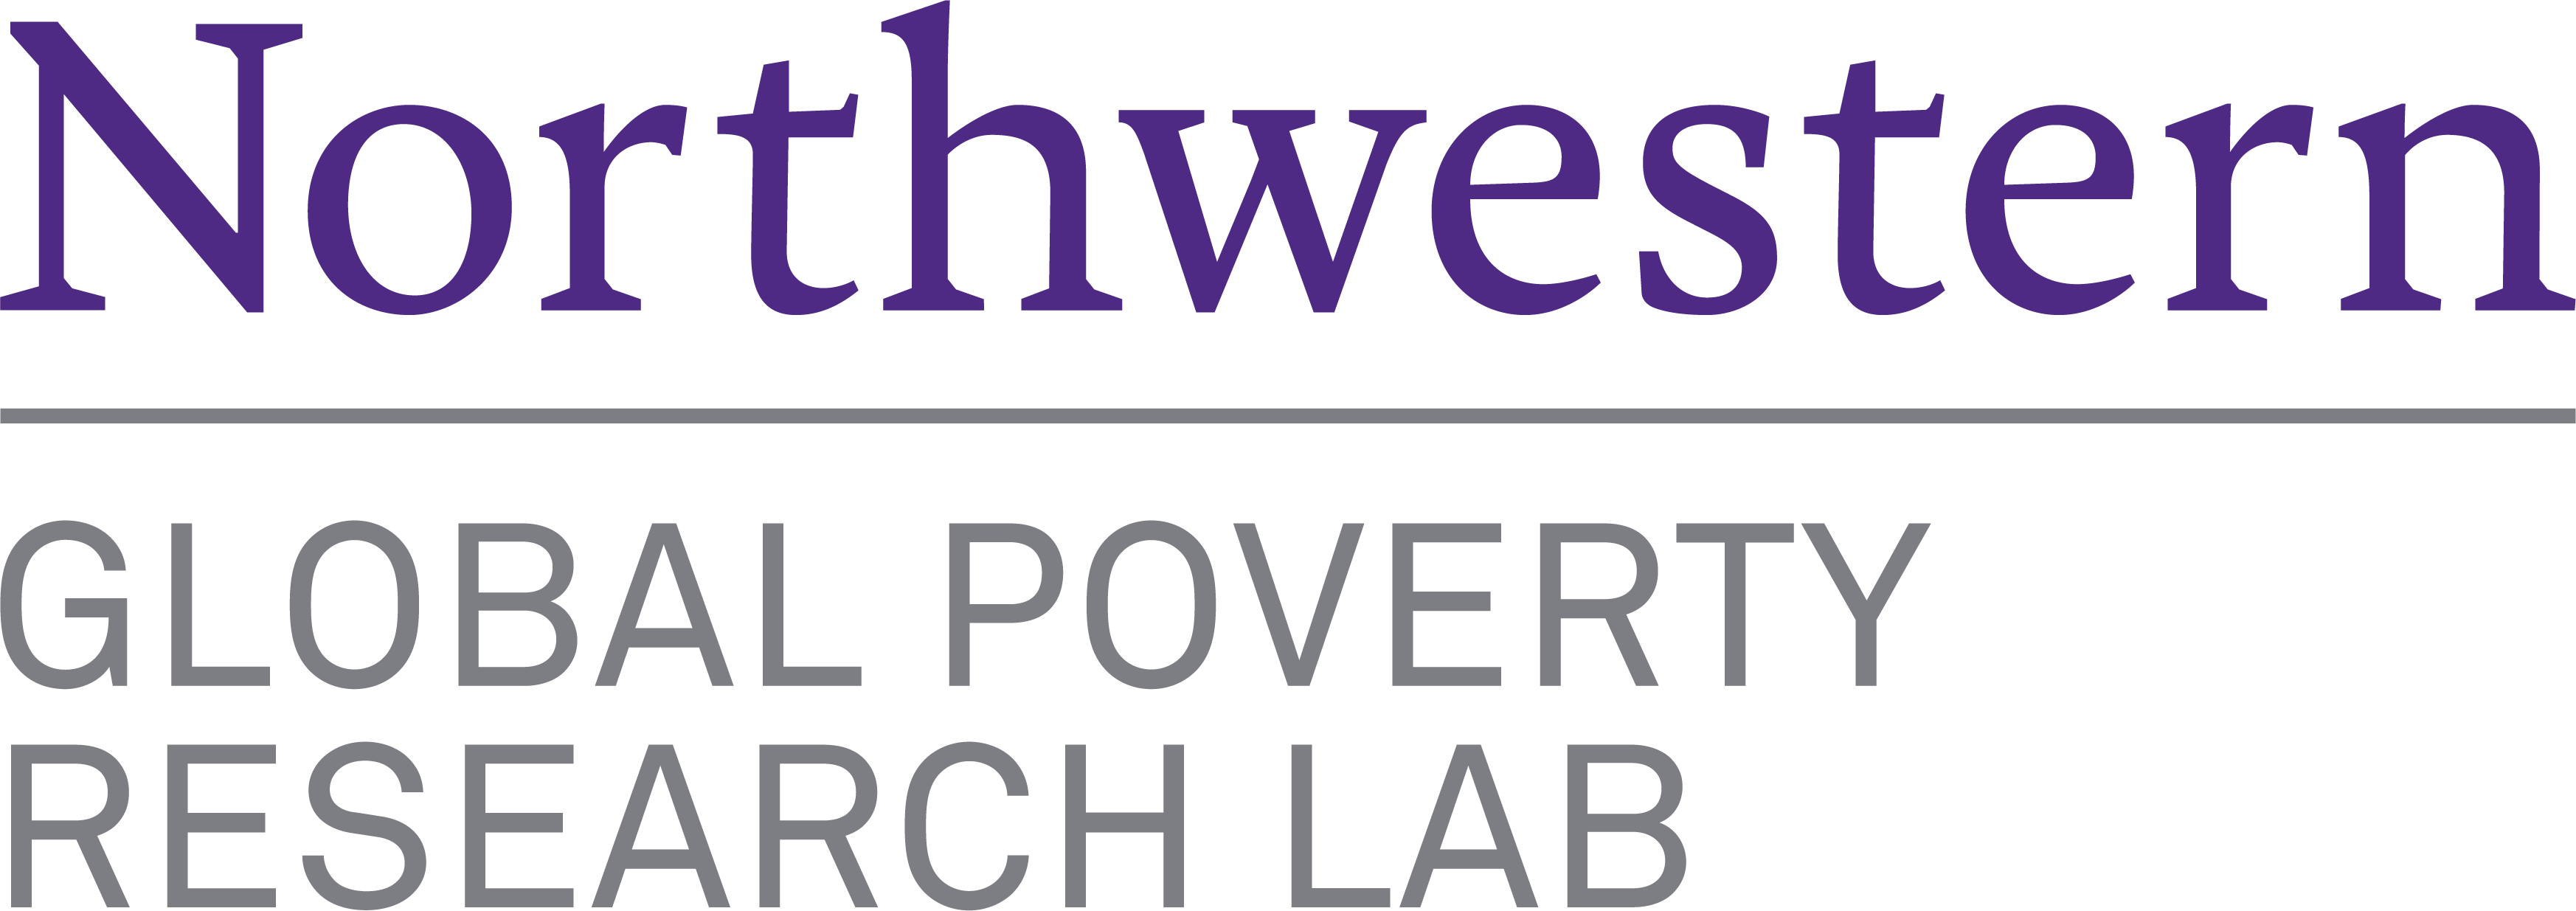 Global Poverty Research Lab Logo